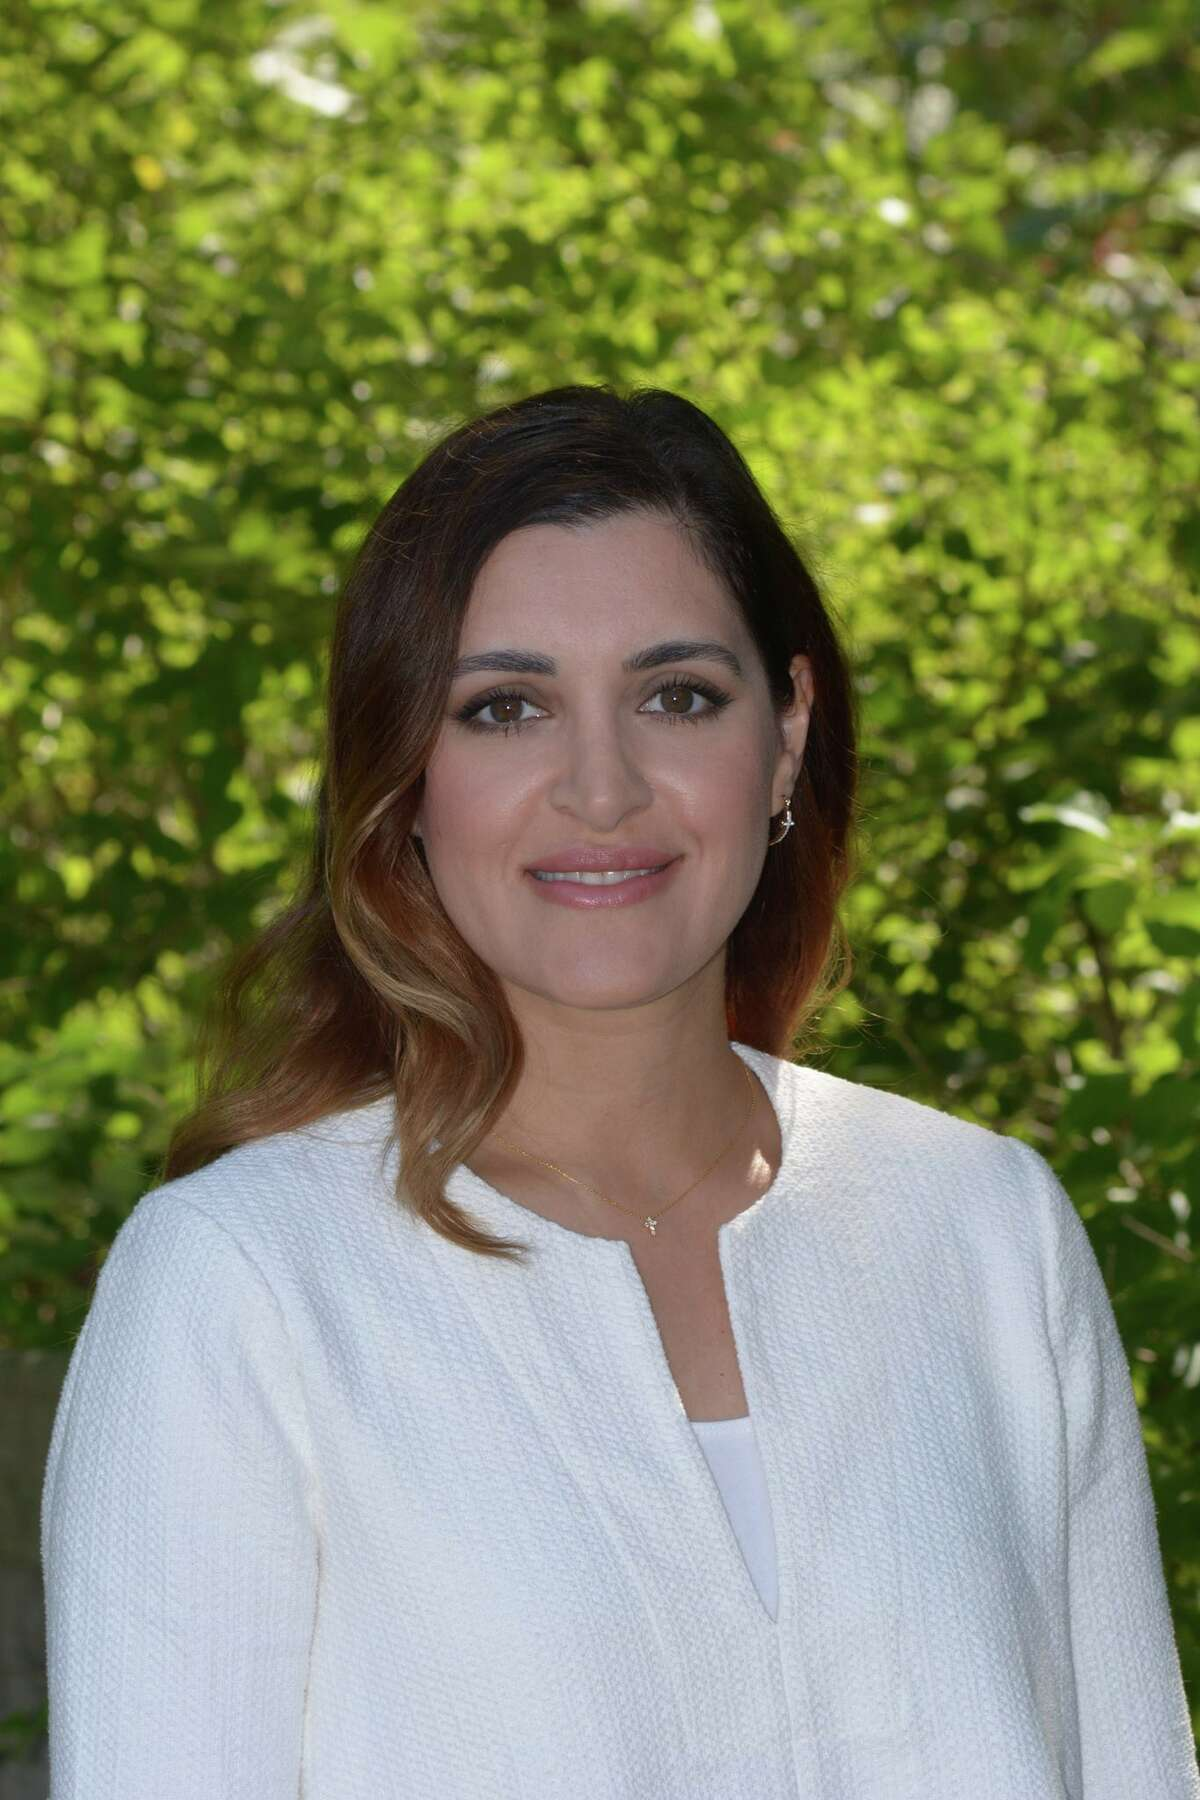 Yasmine Syed is the Republican challenger in the 2017 race for Niskayuna supervisor.